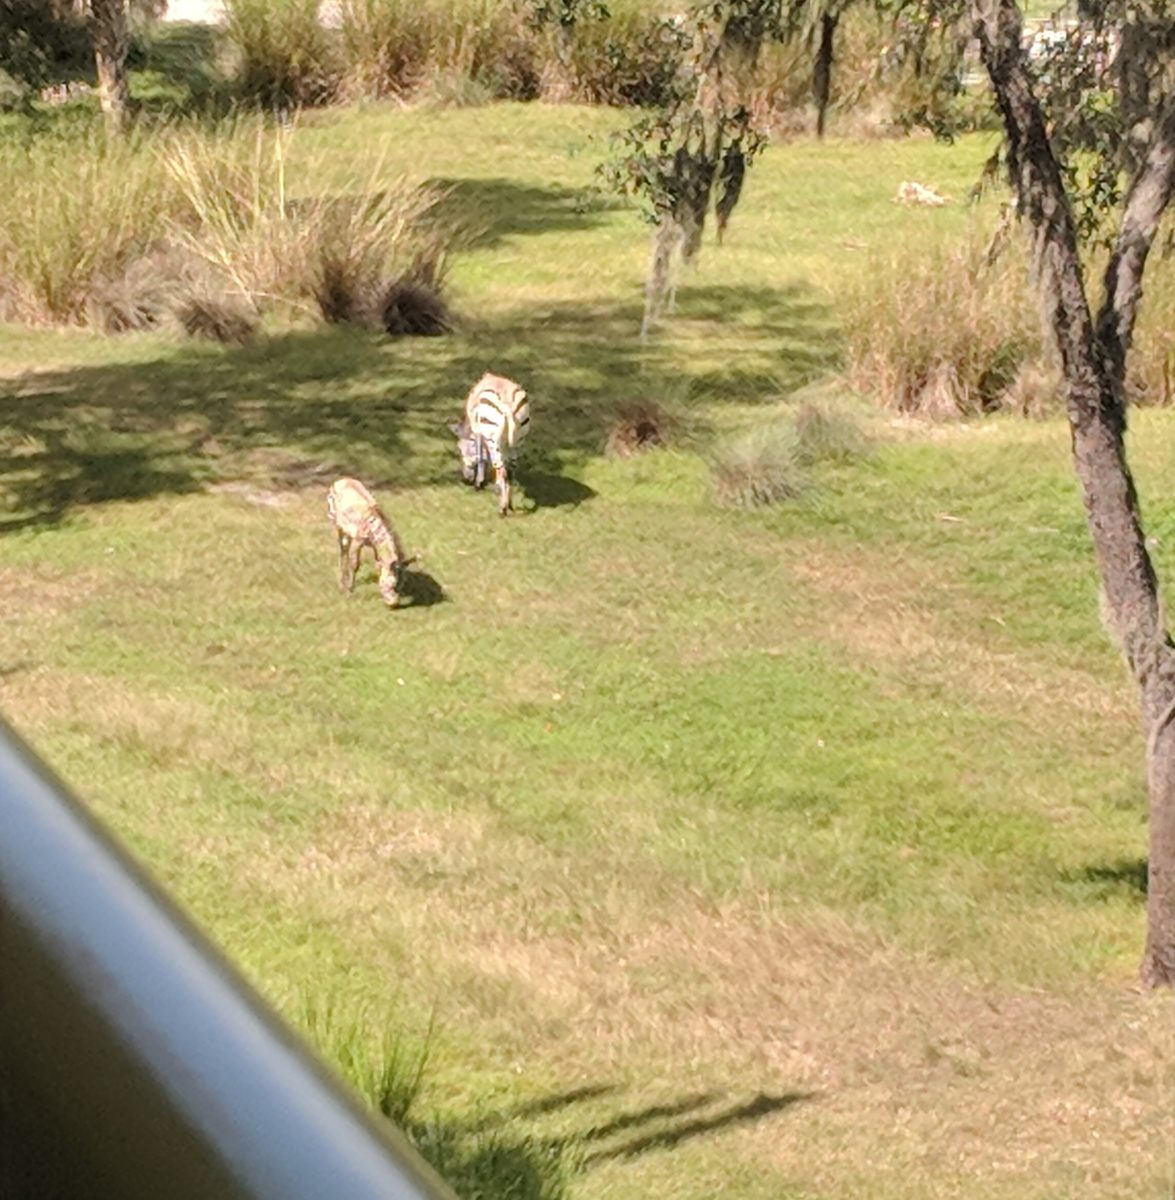 A picture from the balcony of a savanna view room at Disney's Animal Kingdom in Orlando, Florida